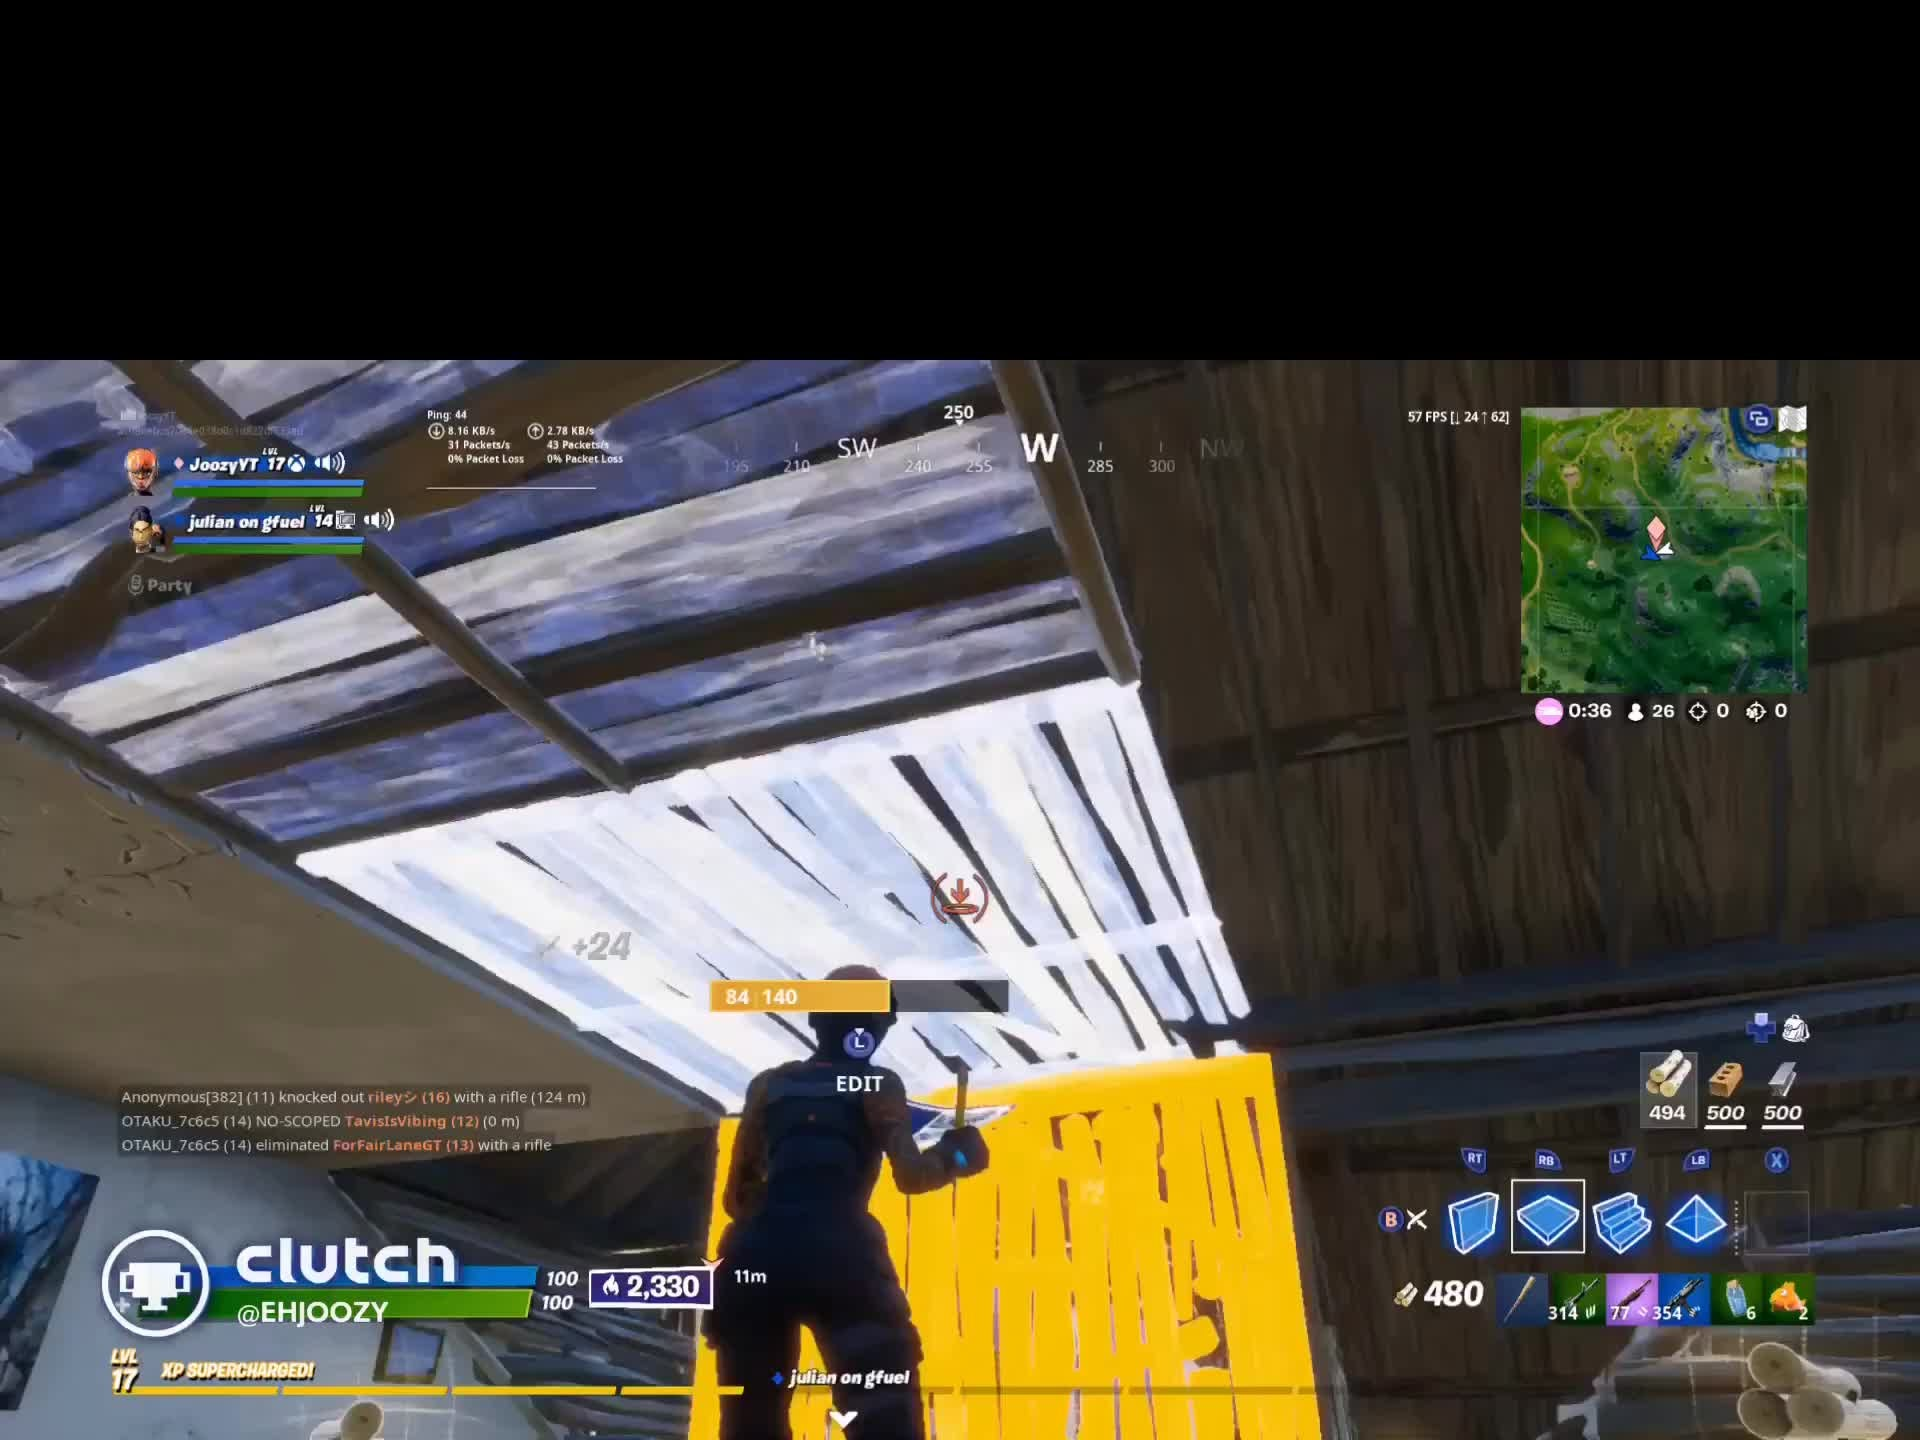 Fortnite: General - I WON THIS GAME WITH 10 KILLS GOOD MORNING  video cover image 1